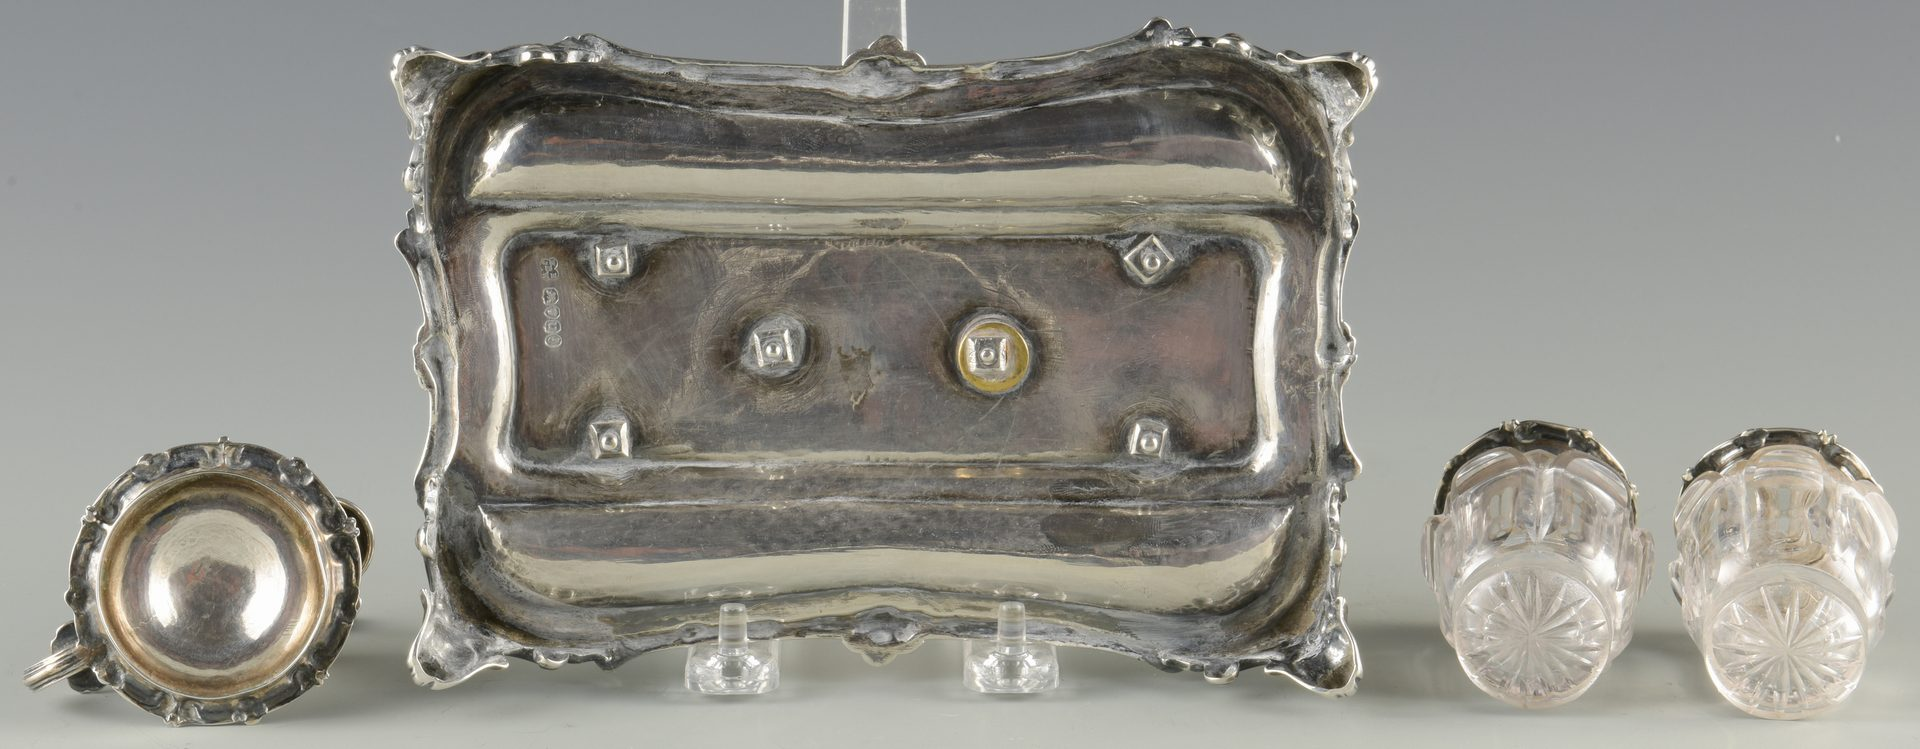 Lot 256: English Sterling Standish, 1835